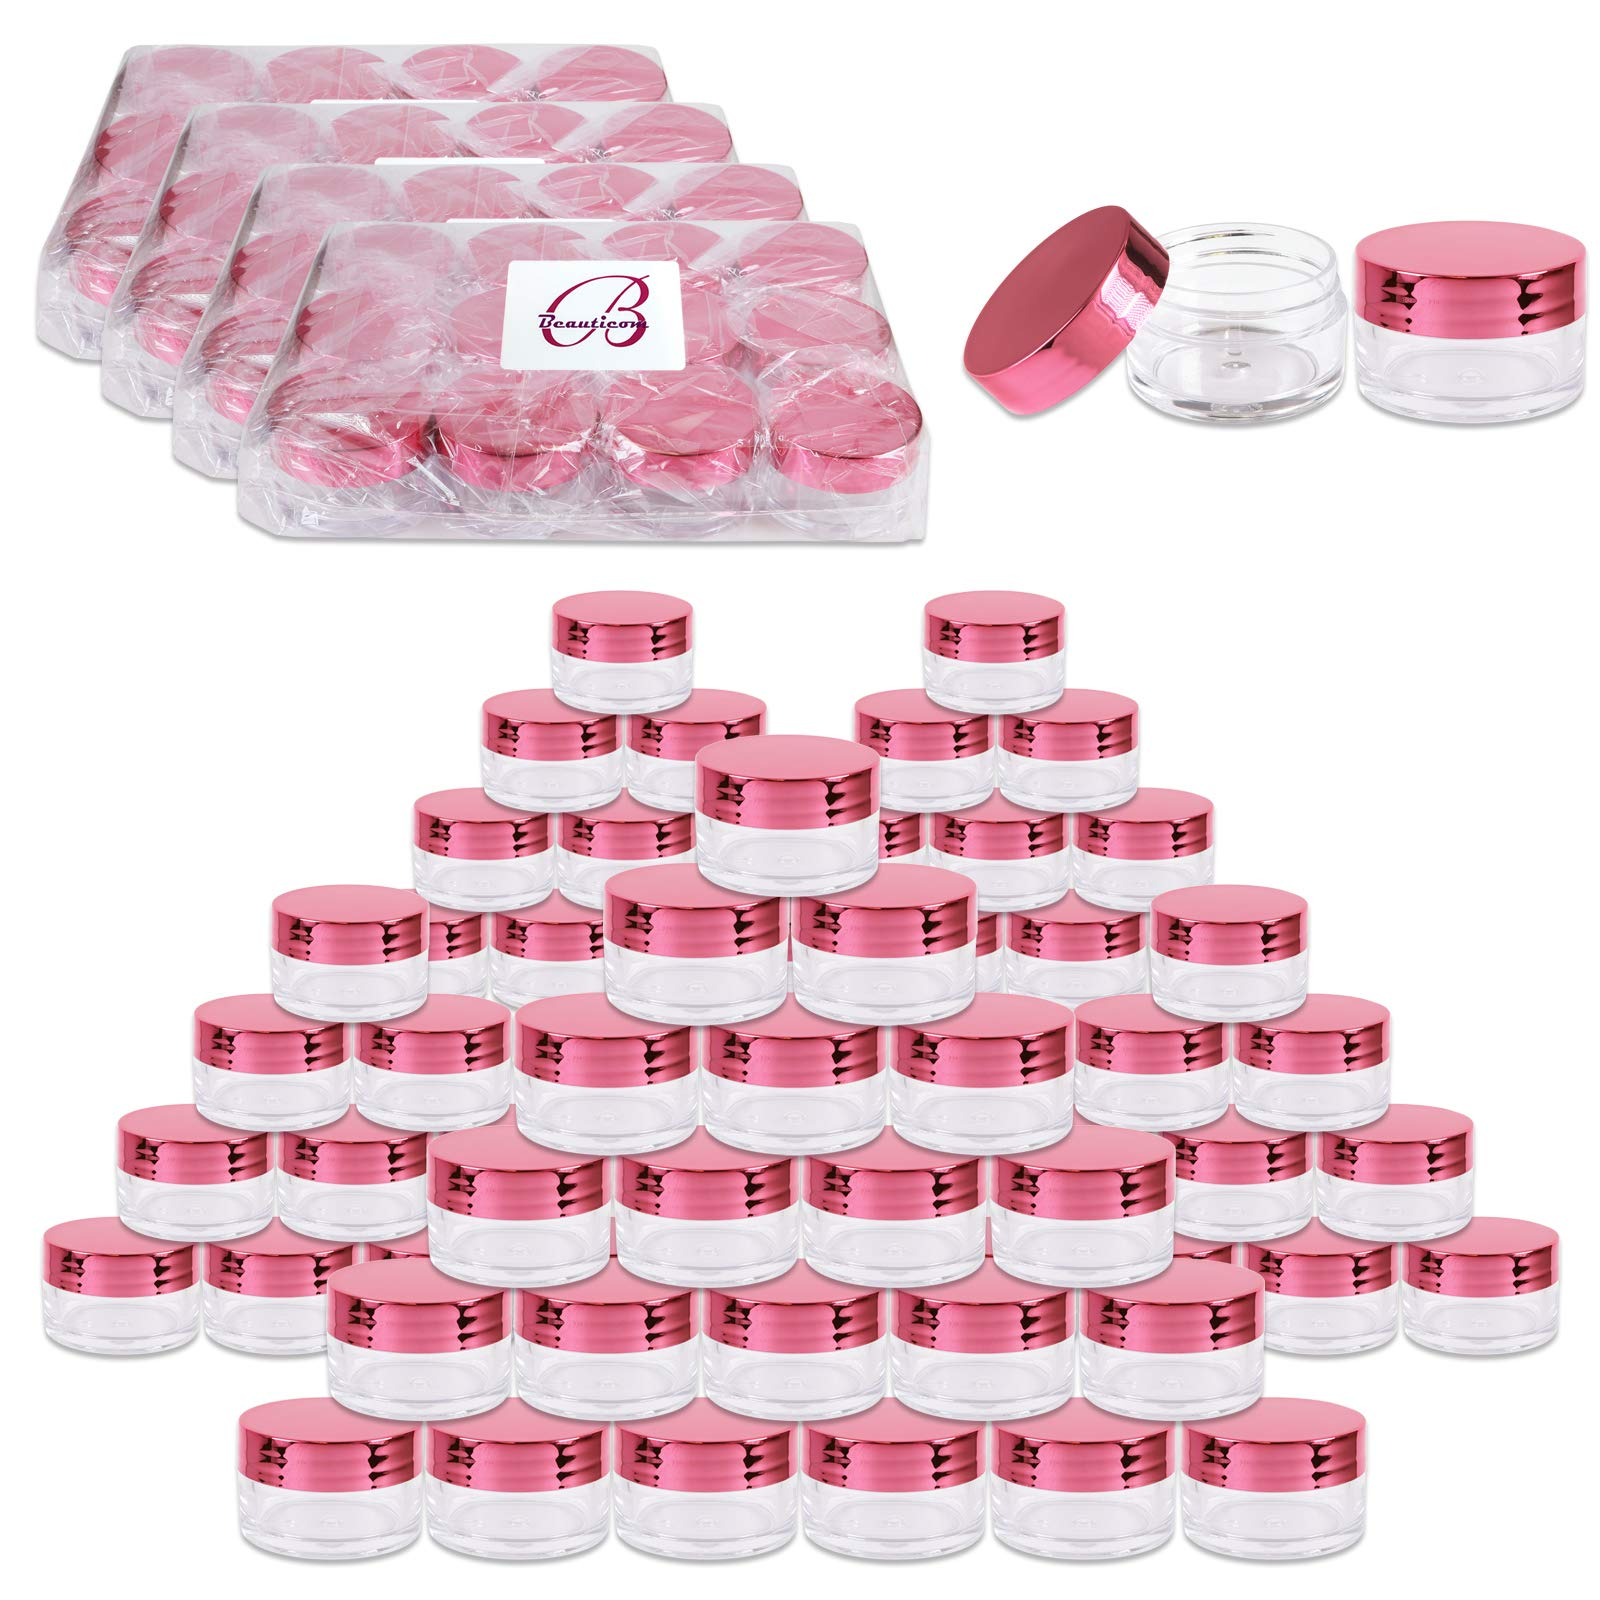 Beauticom 20g/20ml USA Acrylic Round Clear Jars with Lids for Lip Balms, Creams, Make Up, Cosmetics, Samples, Ointments (240 Jars, Metallic Rose-Pink Gold) by Beauticom